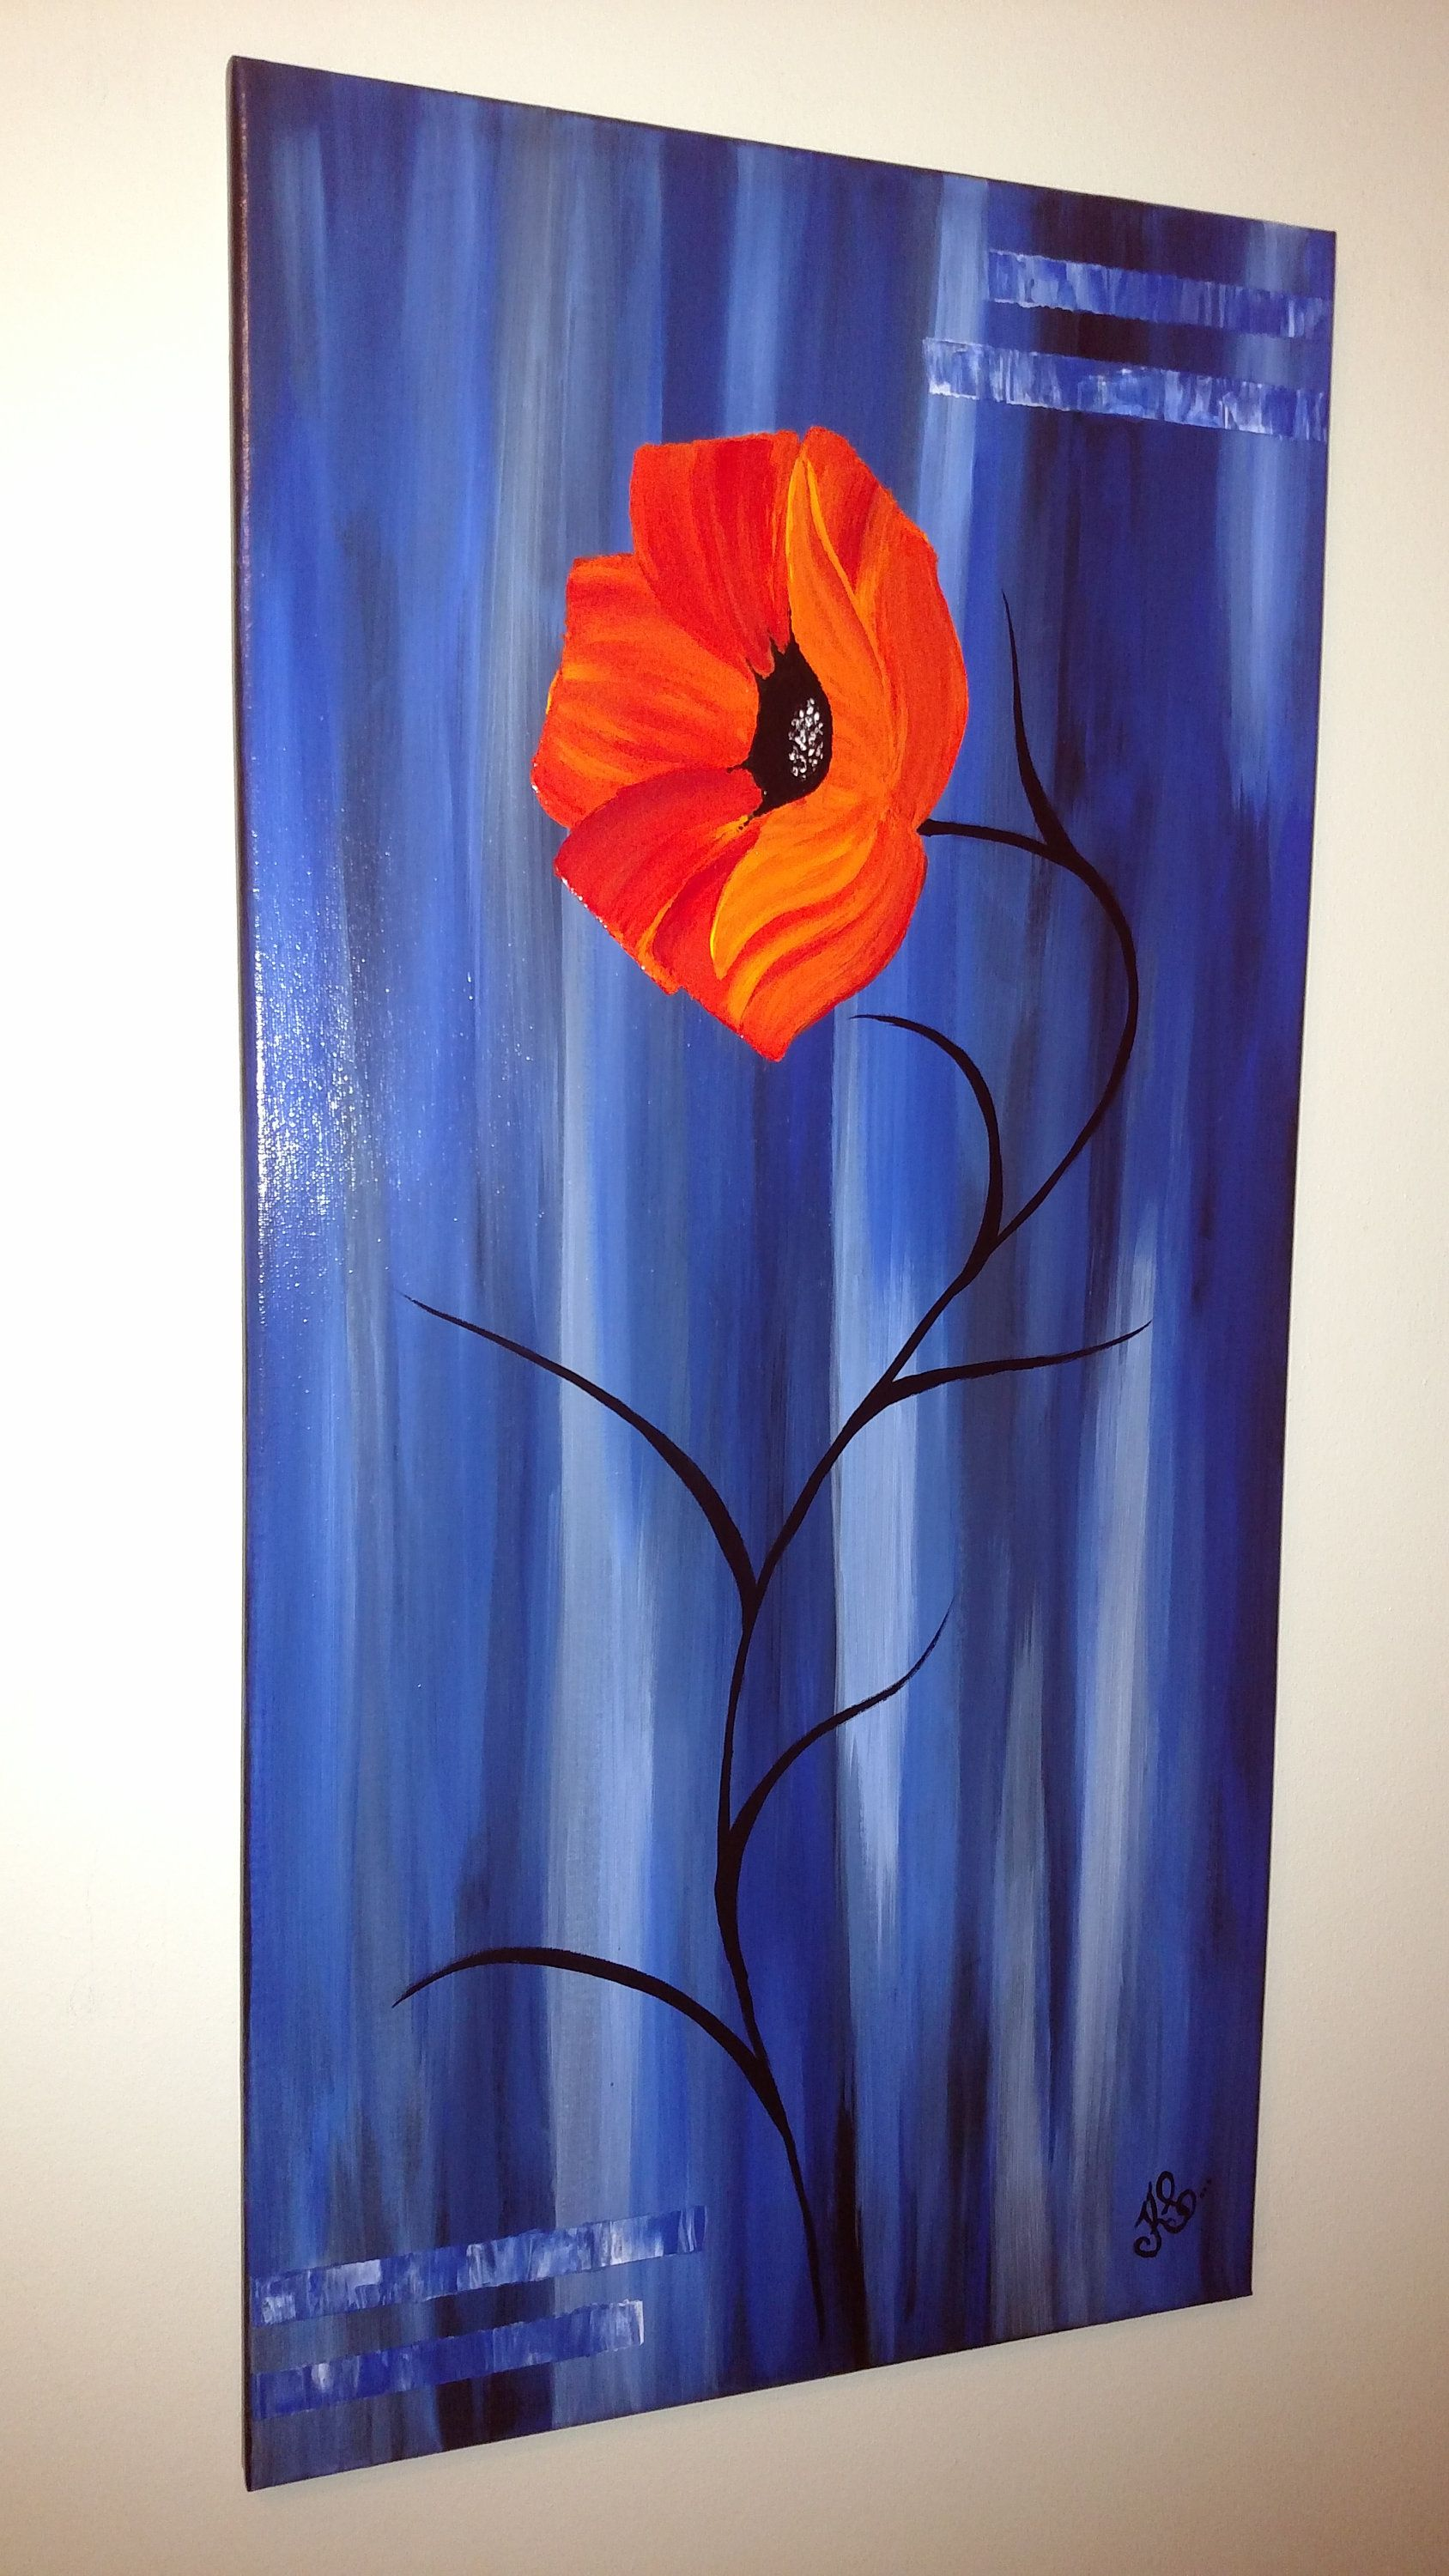 Large Vertical Paintings Large Royal Blue Red Poppy Flower Vertical Canvas Painting